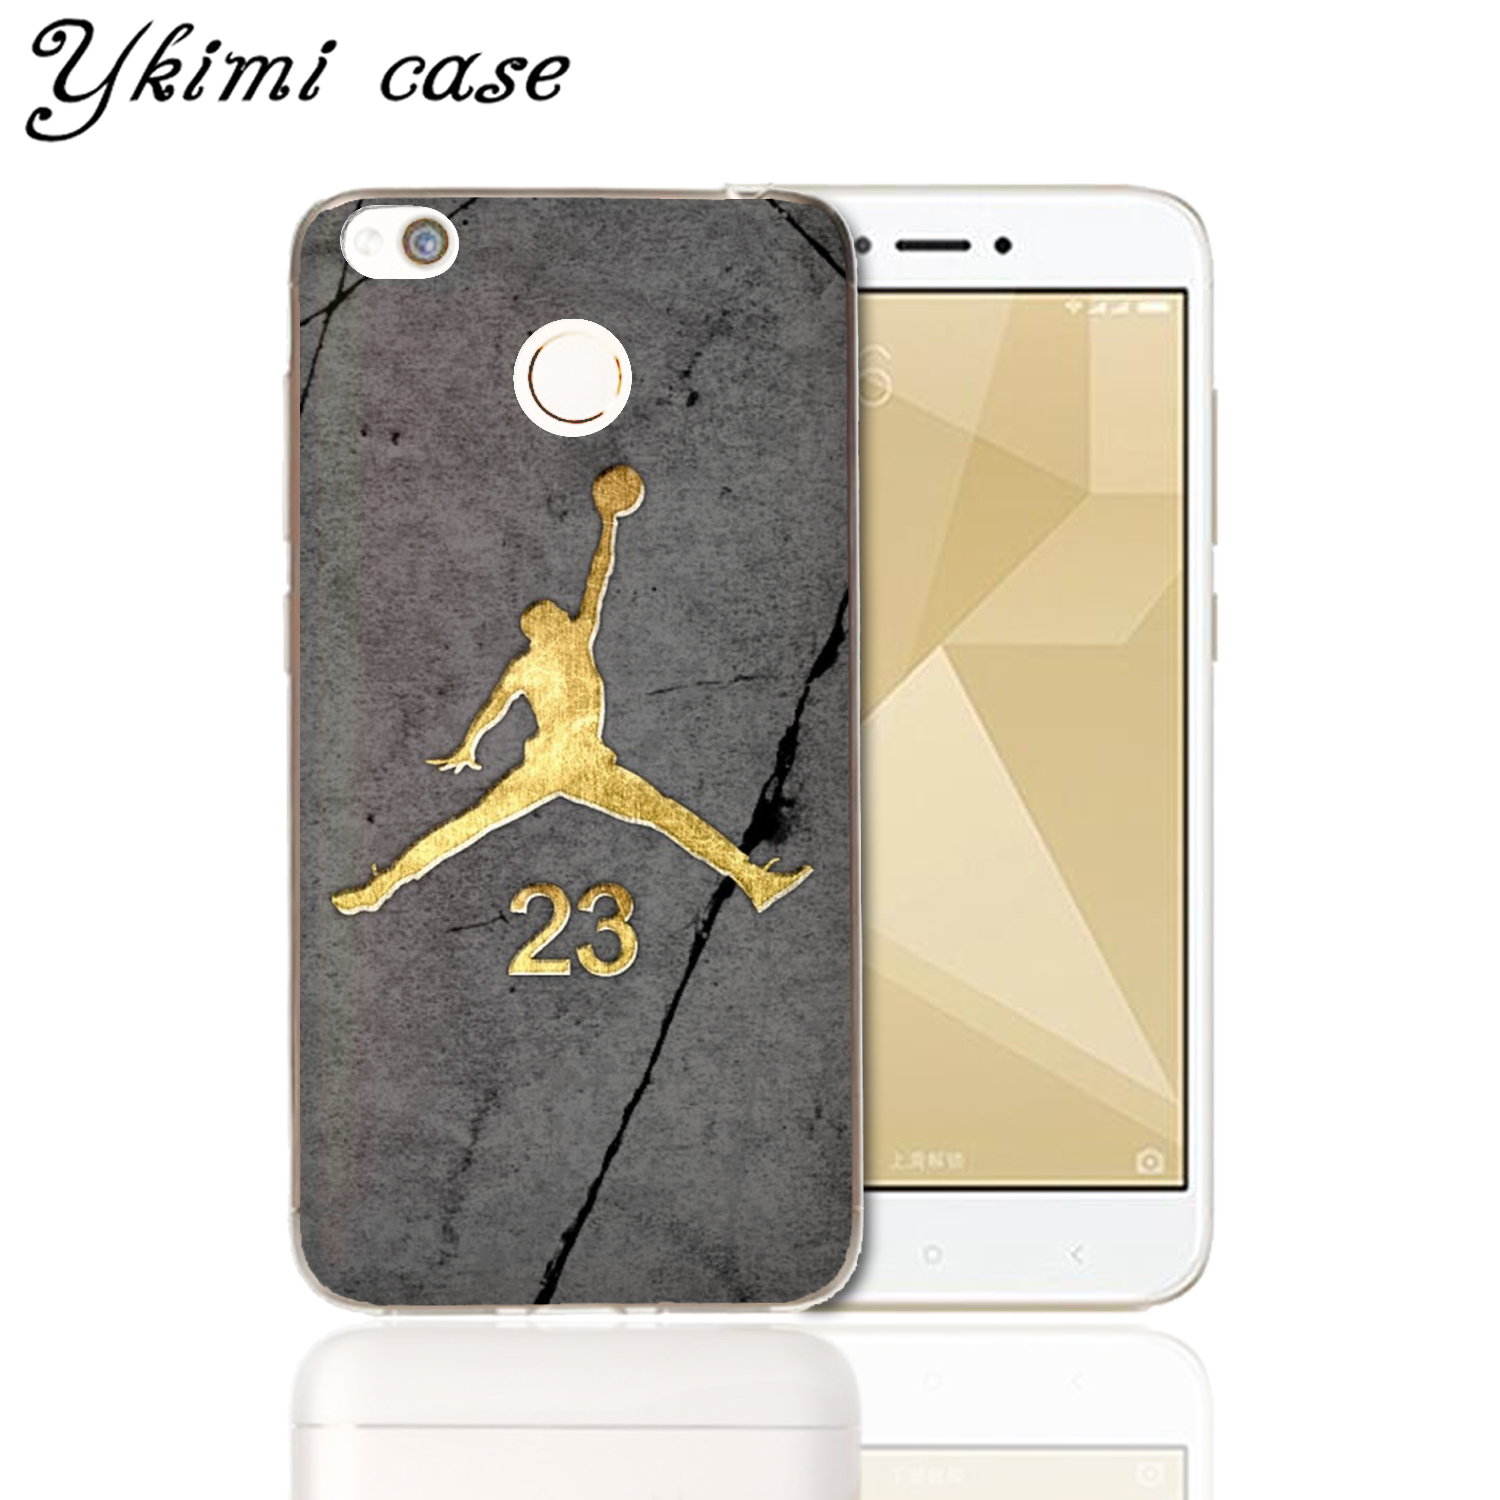 62169f8d692f Ykimi case New back cover For Xiaomi Redmi 4X case Fashion No. 23 Jordan  transparent soft TPU silicone capa-in Fitted Cases from Cellphones ...